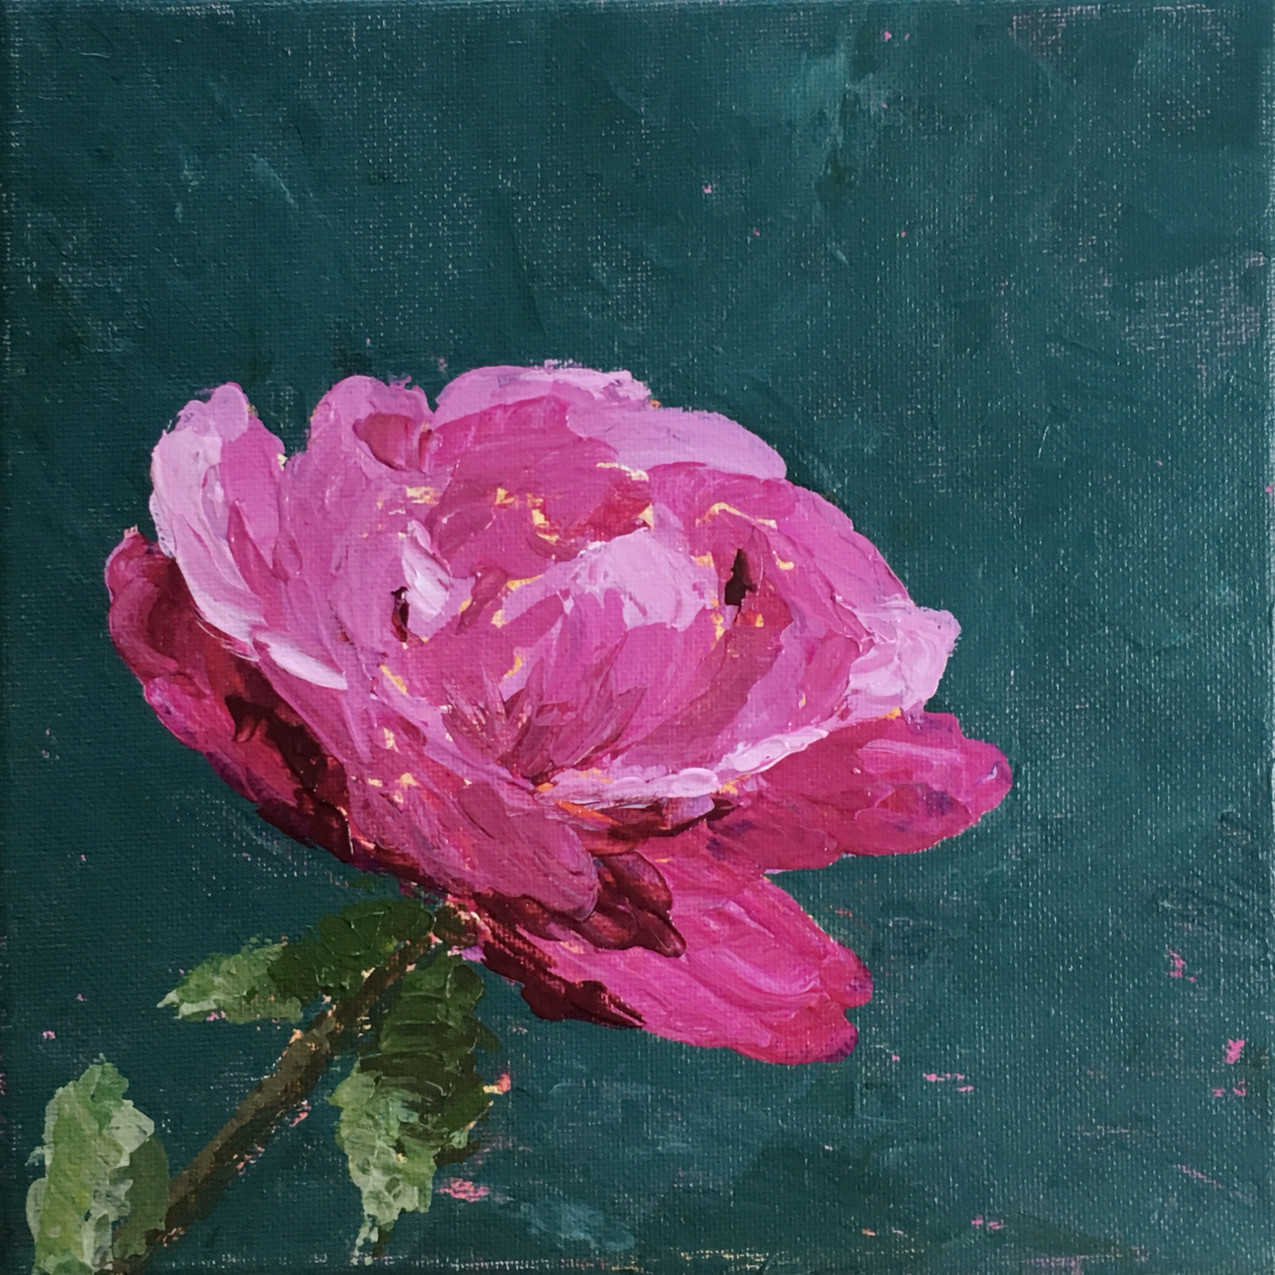 Acrylic painting of a rose flower.